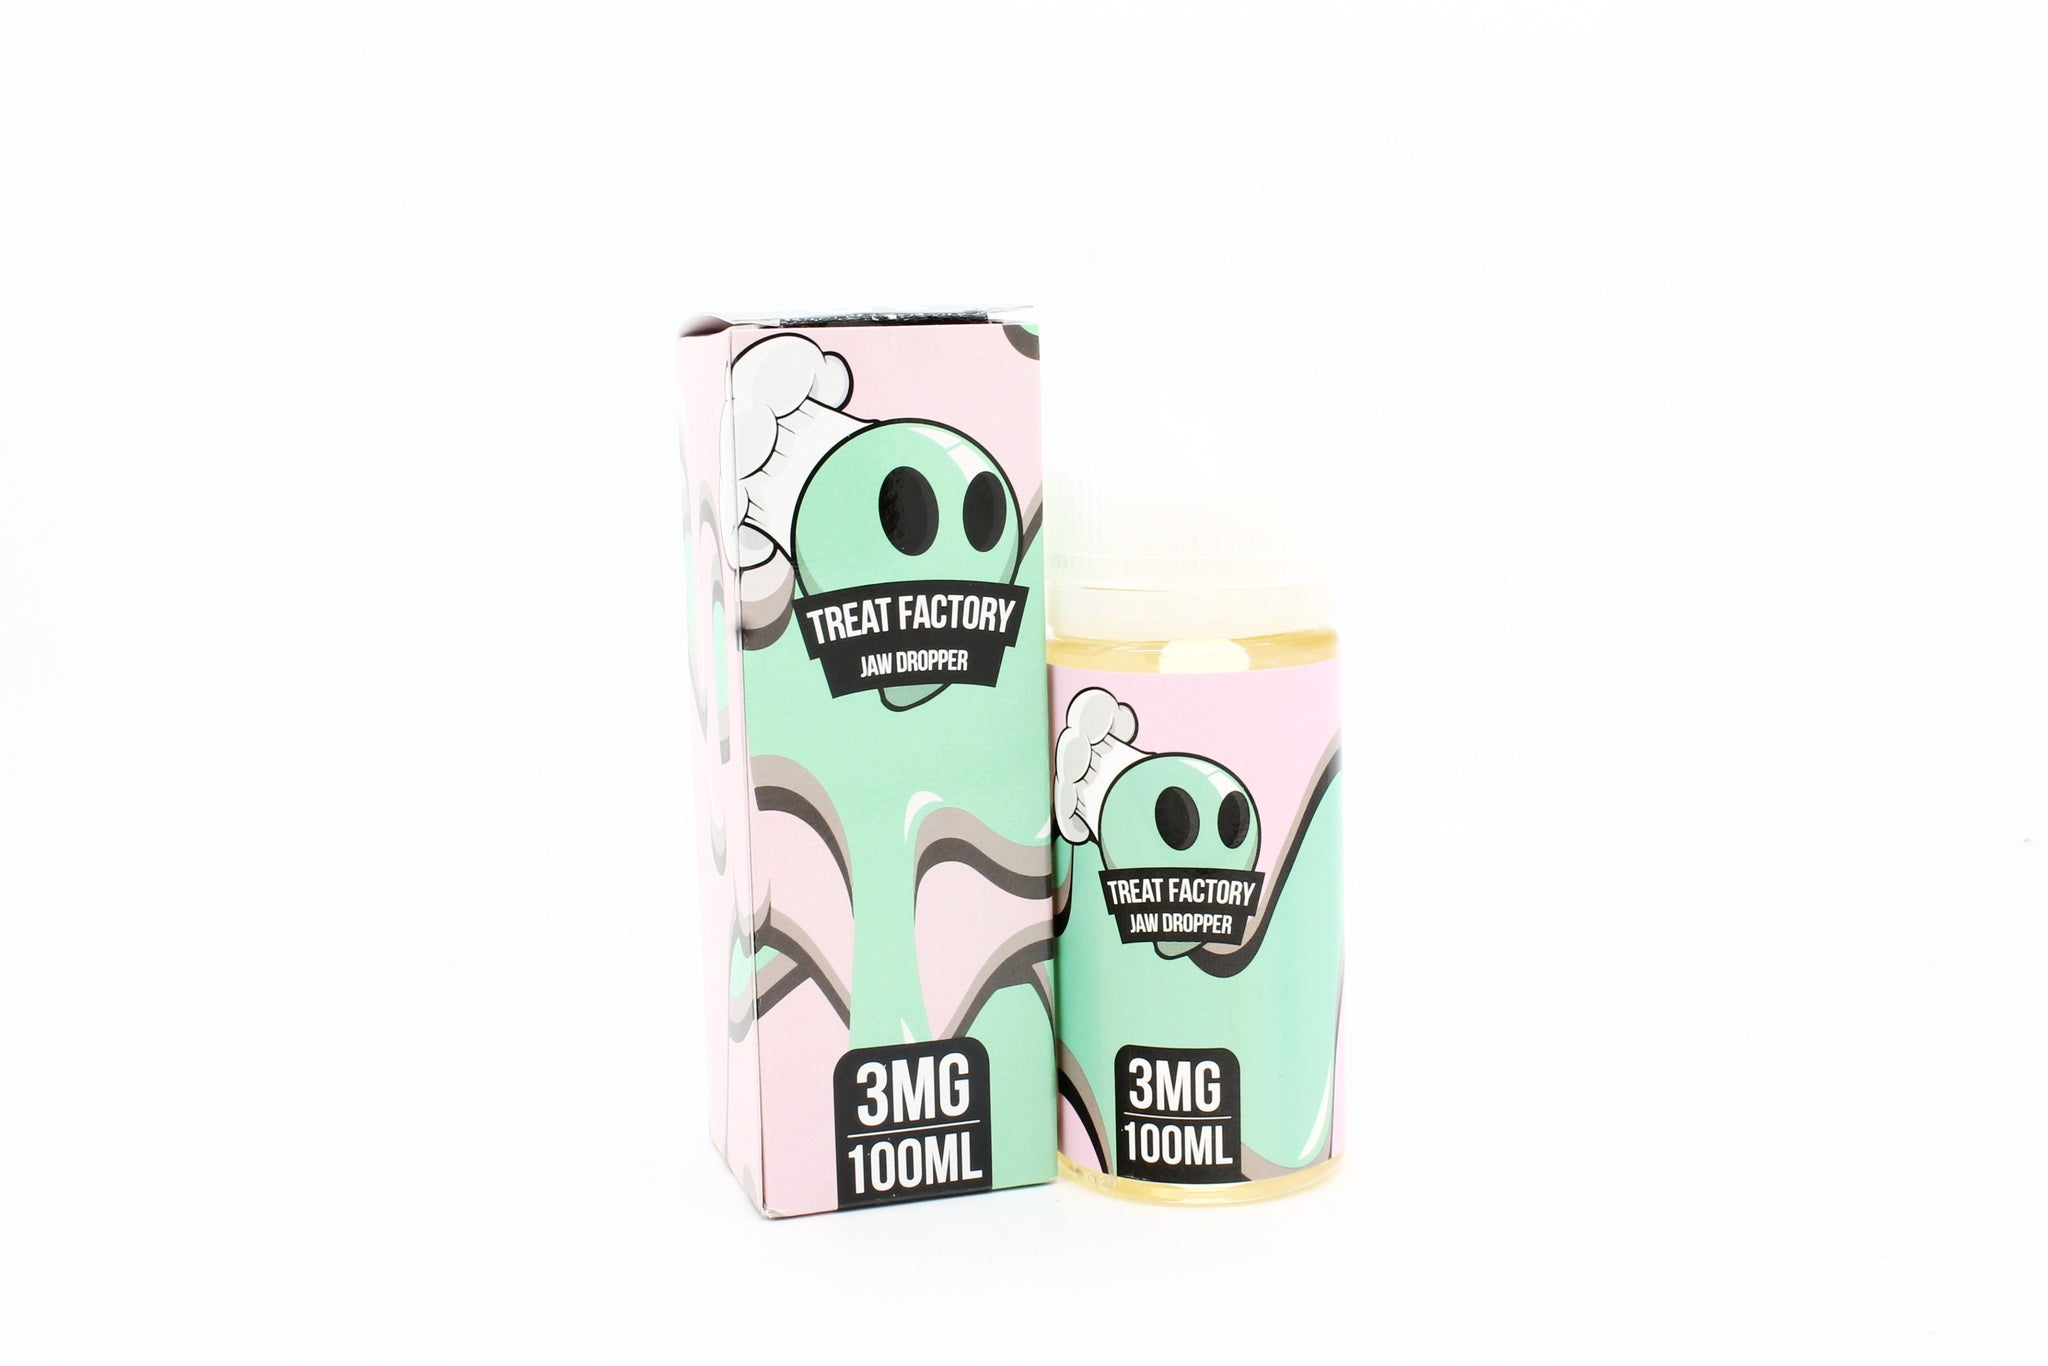 Treat Factory Jaw Dropper by Air Factory - 100 ML